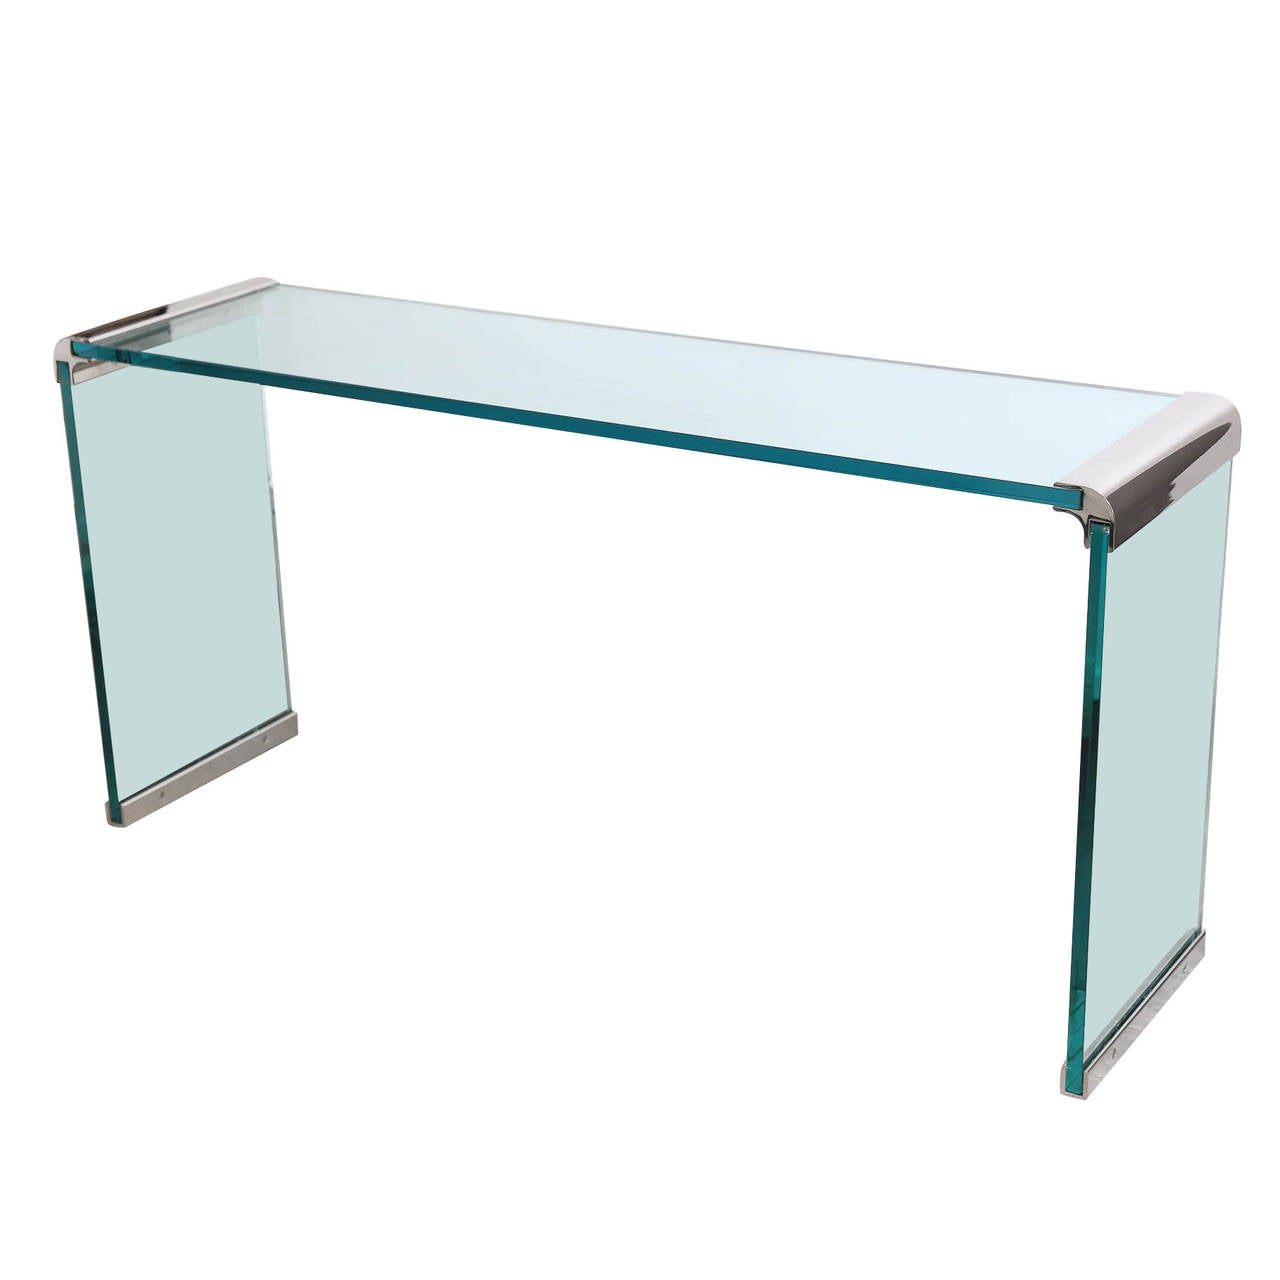 pace waterfall chrome bar and glass console table at 1stdibs